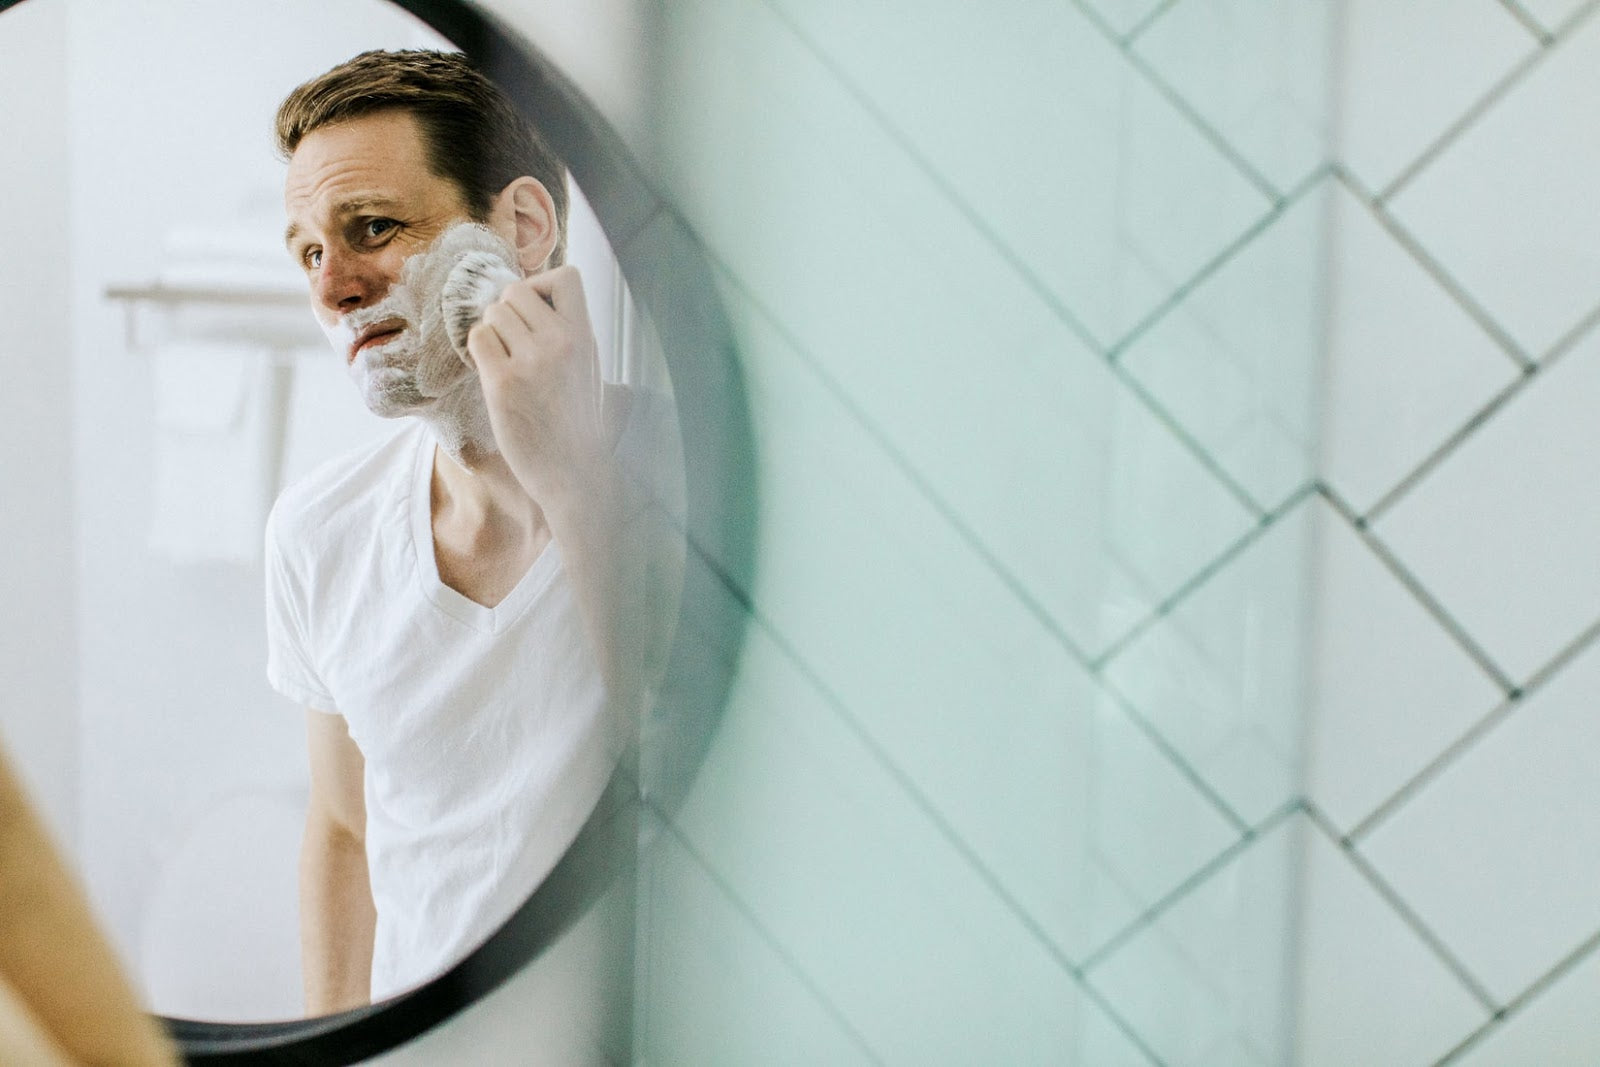 What Does Shaving Cream Do, and Why Is It Important?